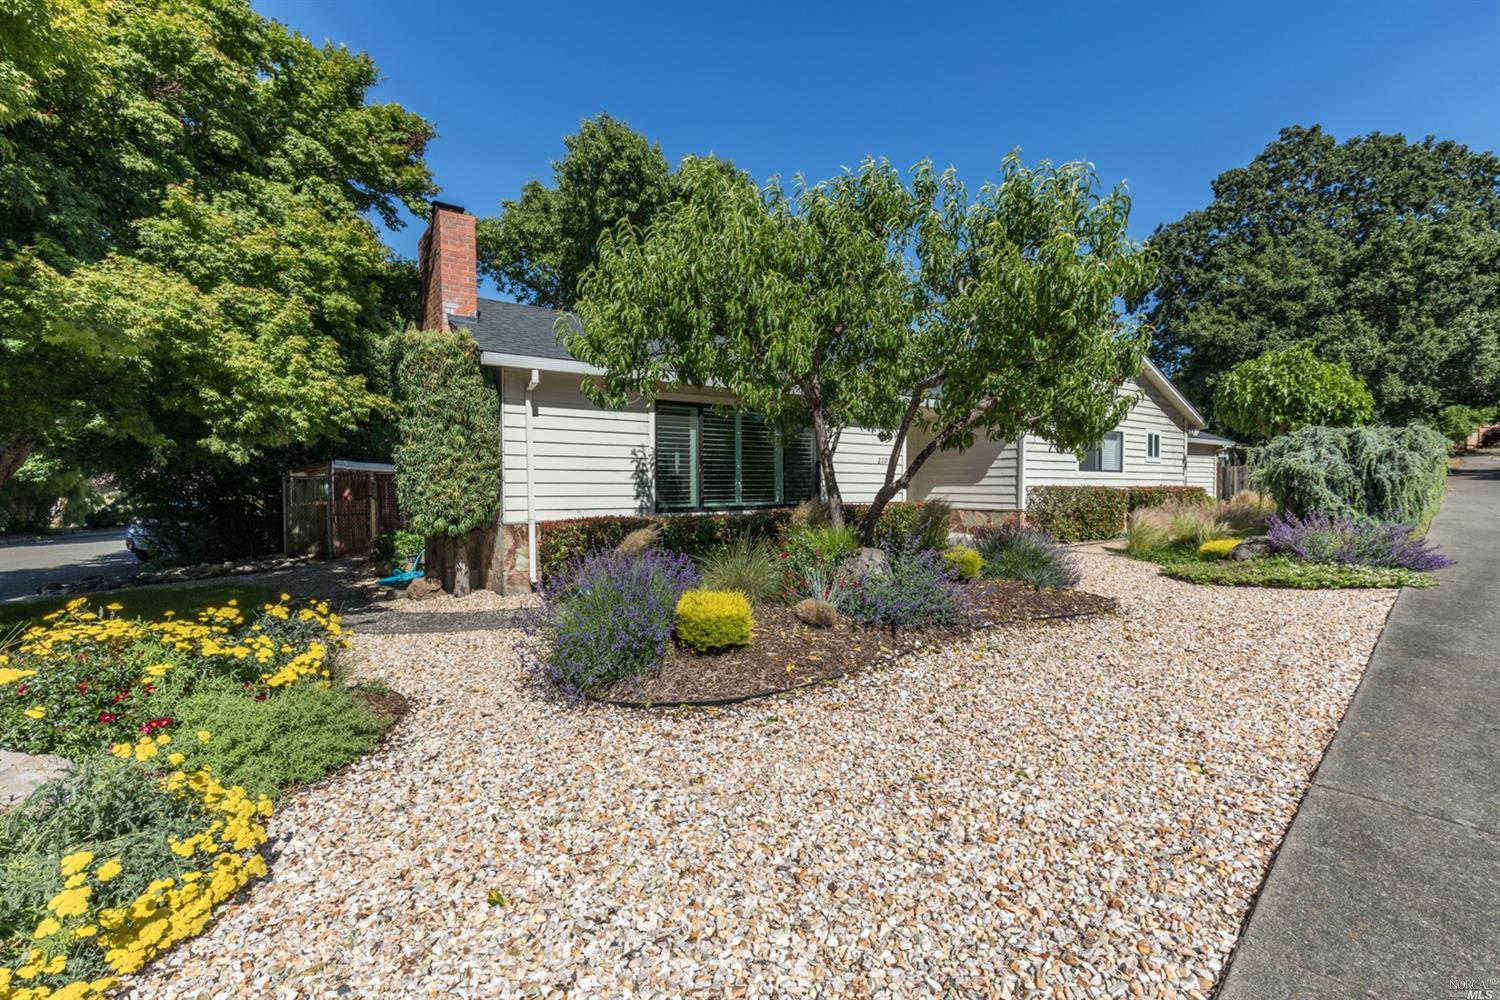 2701 Redwood Road, Napa, CA 94558 has an Open House on  Sunday, October 27, 2019 1:00 PM to 3:00 PM